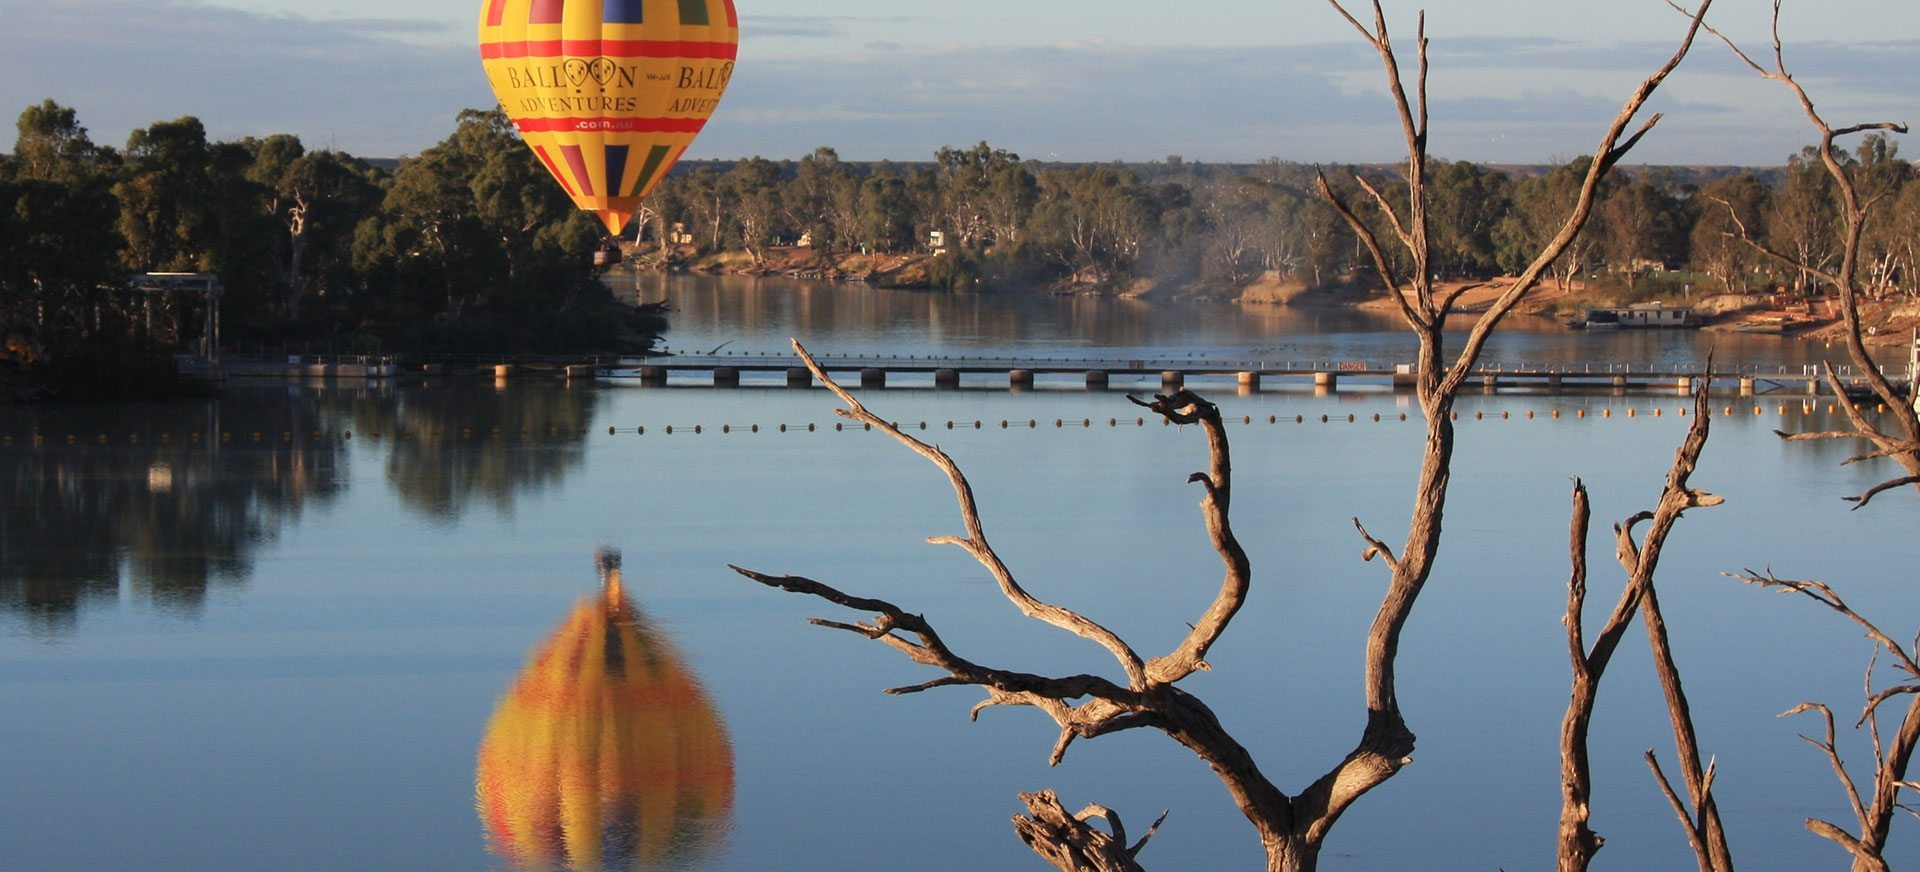 Awesome day for hot air ballooning over Murray River, SA.